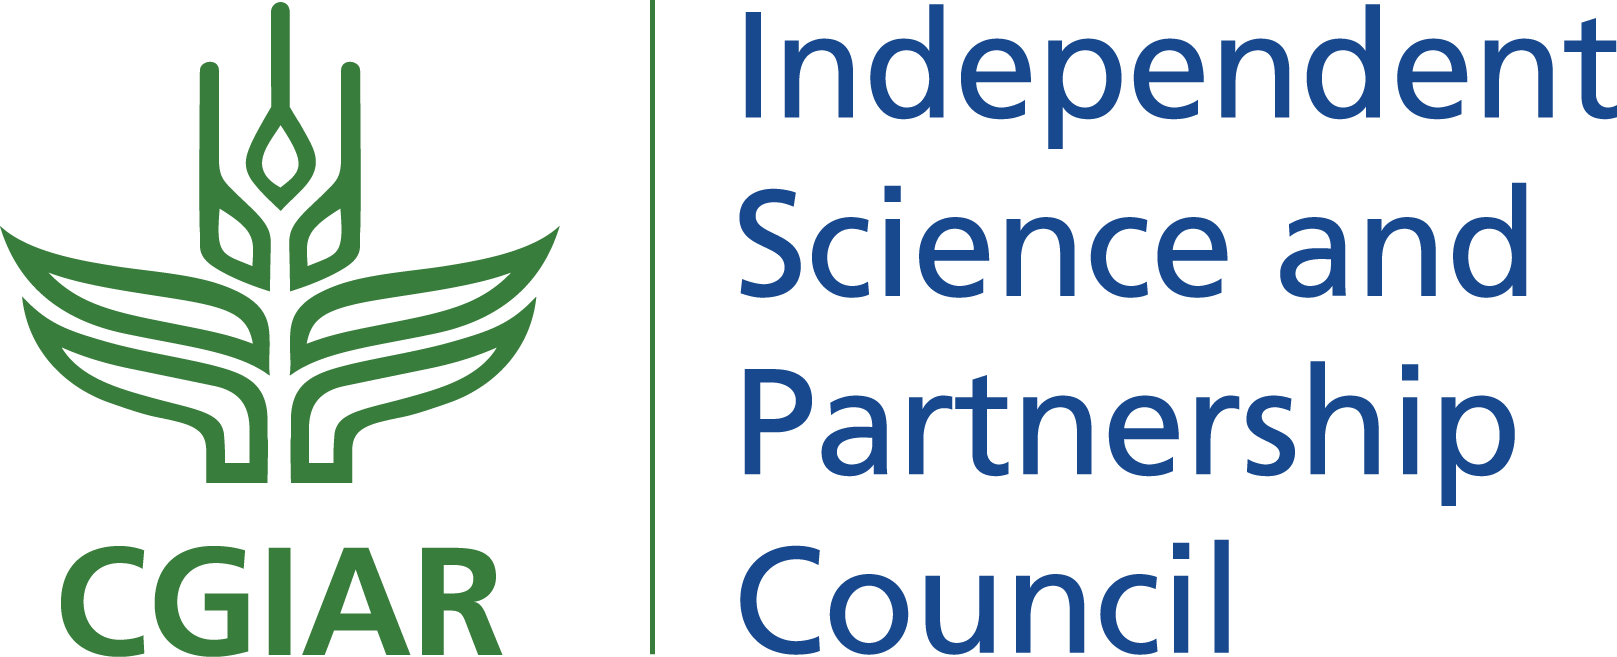 Independent Science and Partnership Council